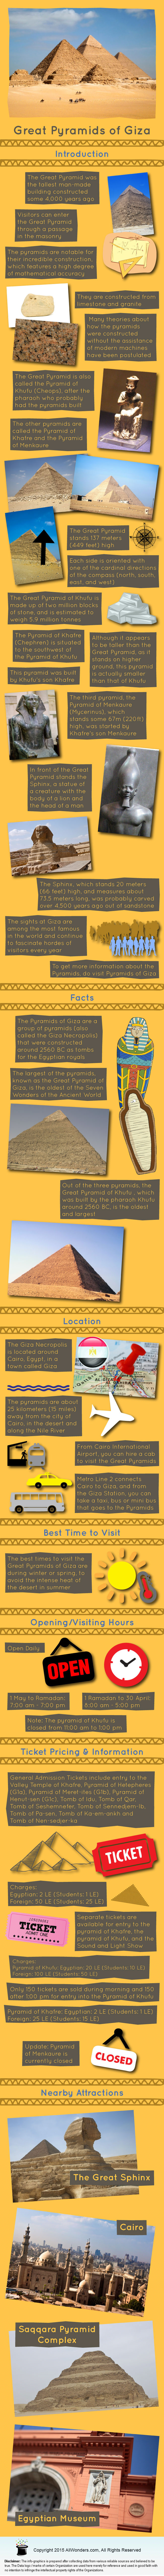 Pyramids of Giza - Facts & Infographic